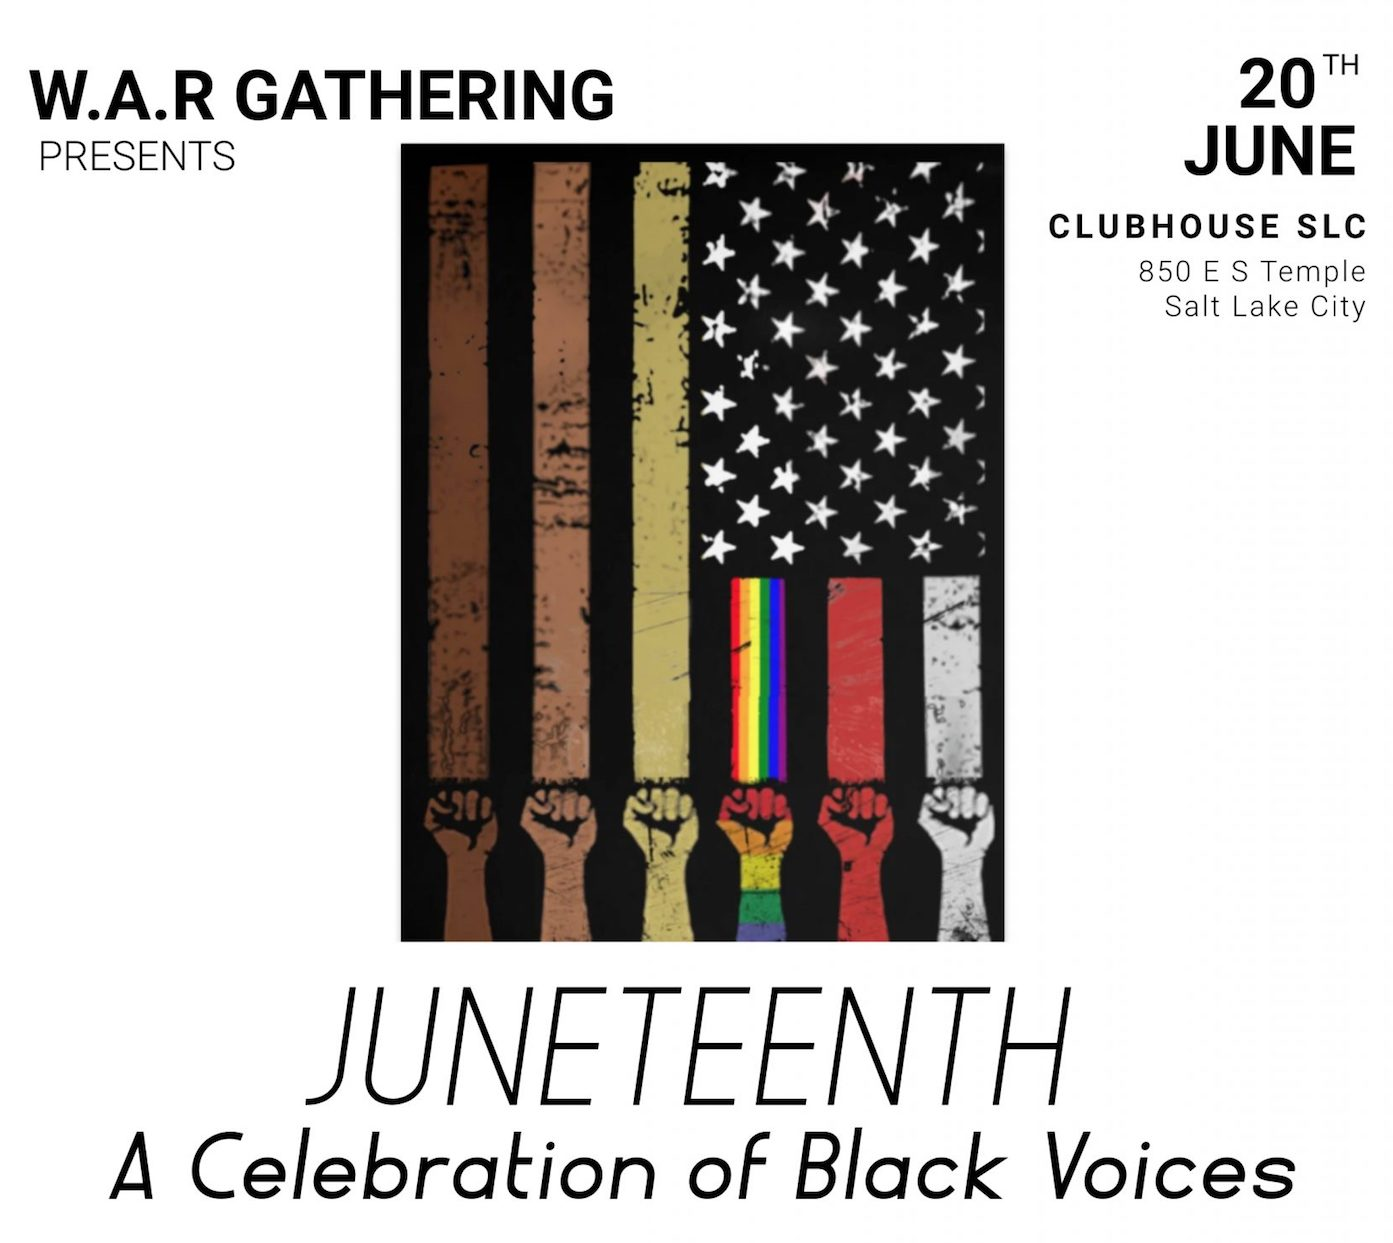 On June 20, Shea Freedom's W.A.R. Gathering is bringing Juneteenth: A Celebration of Black Voices to the Clubhouse on South Temple.